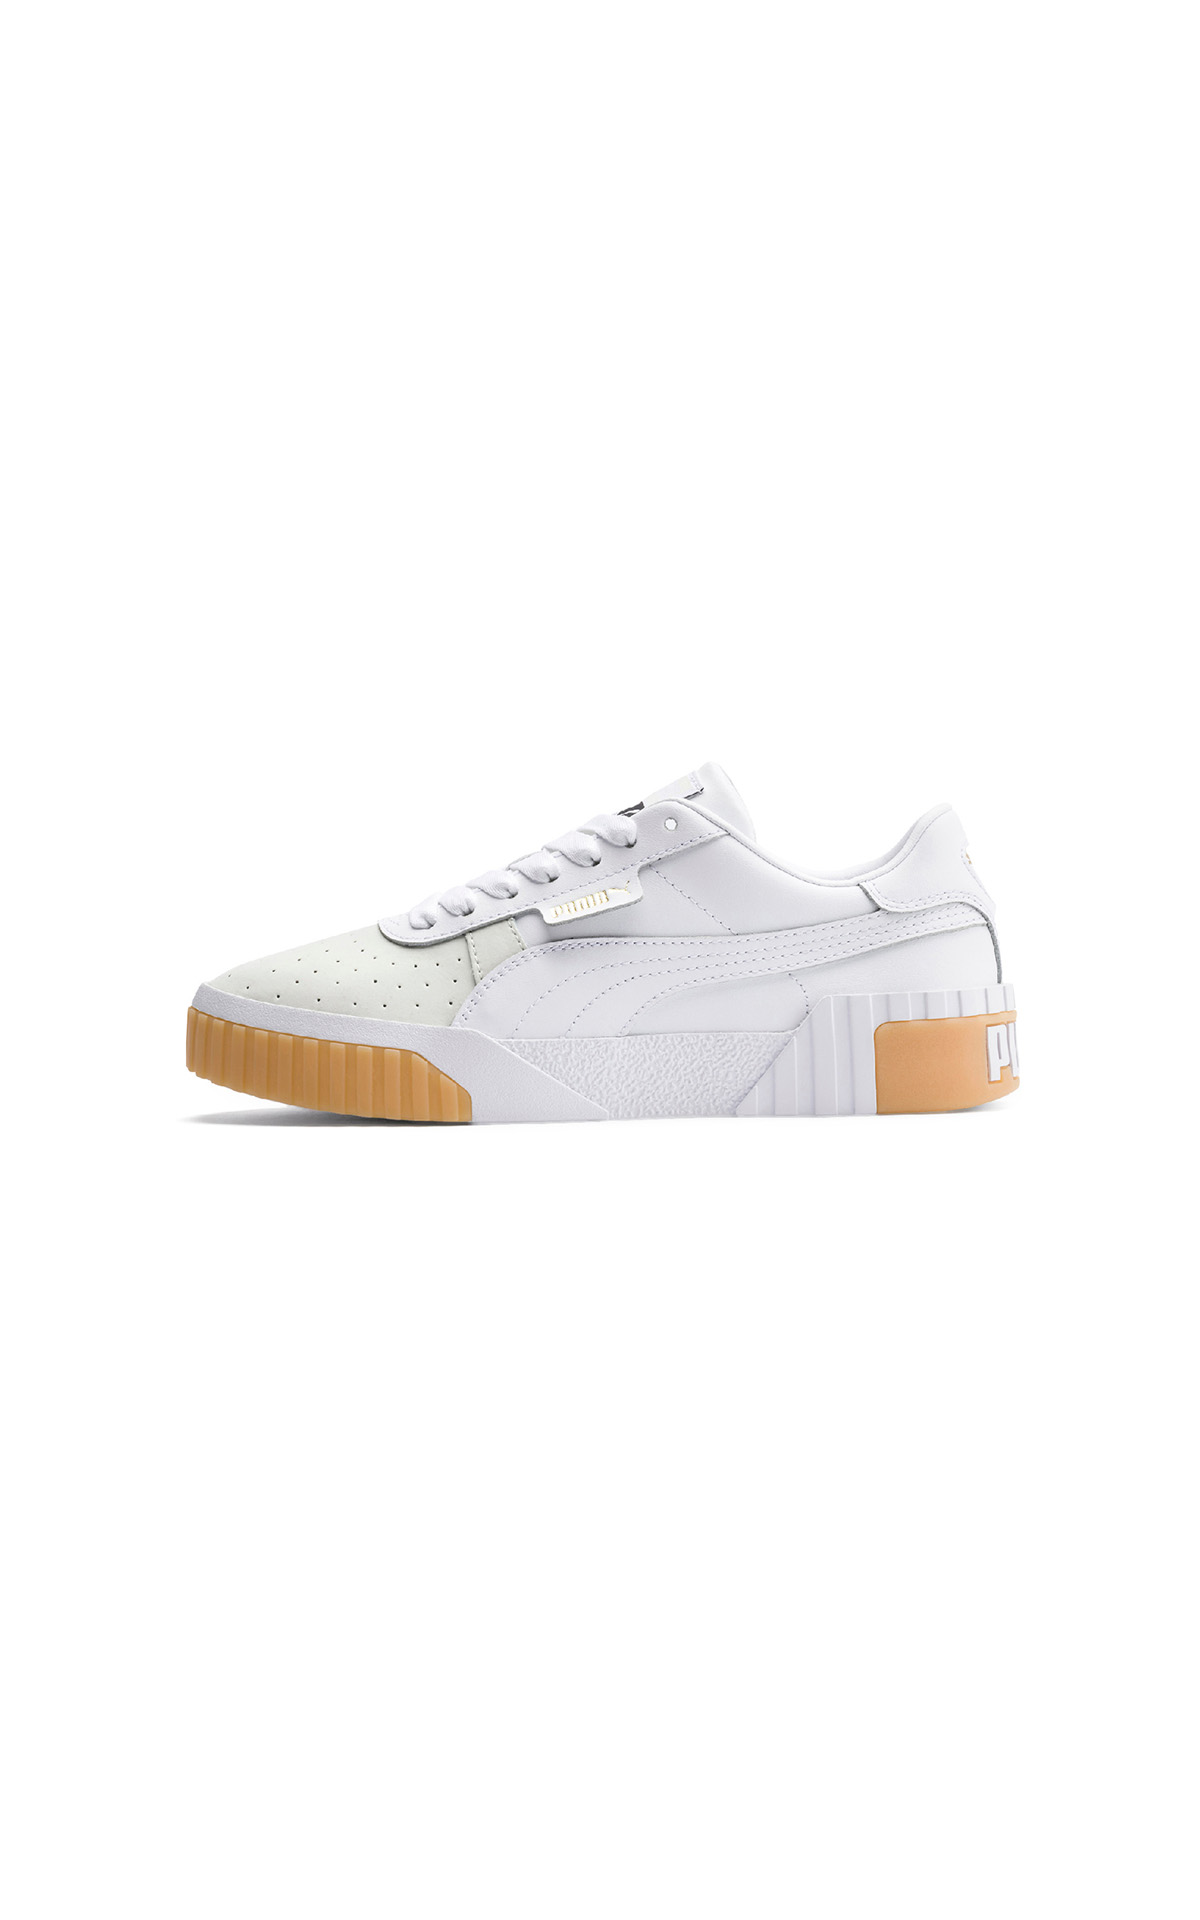 PUMA Cali exotic women's in white at The Bicester Village Shopping Collection